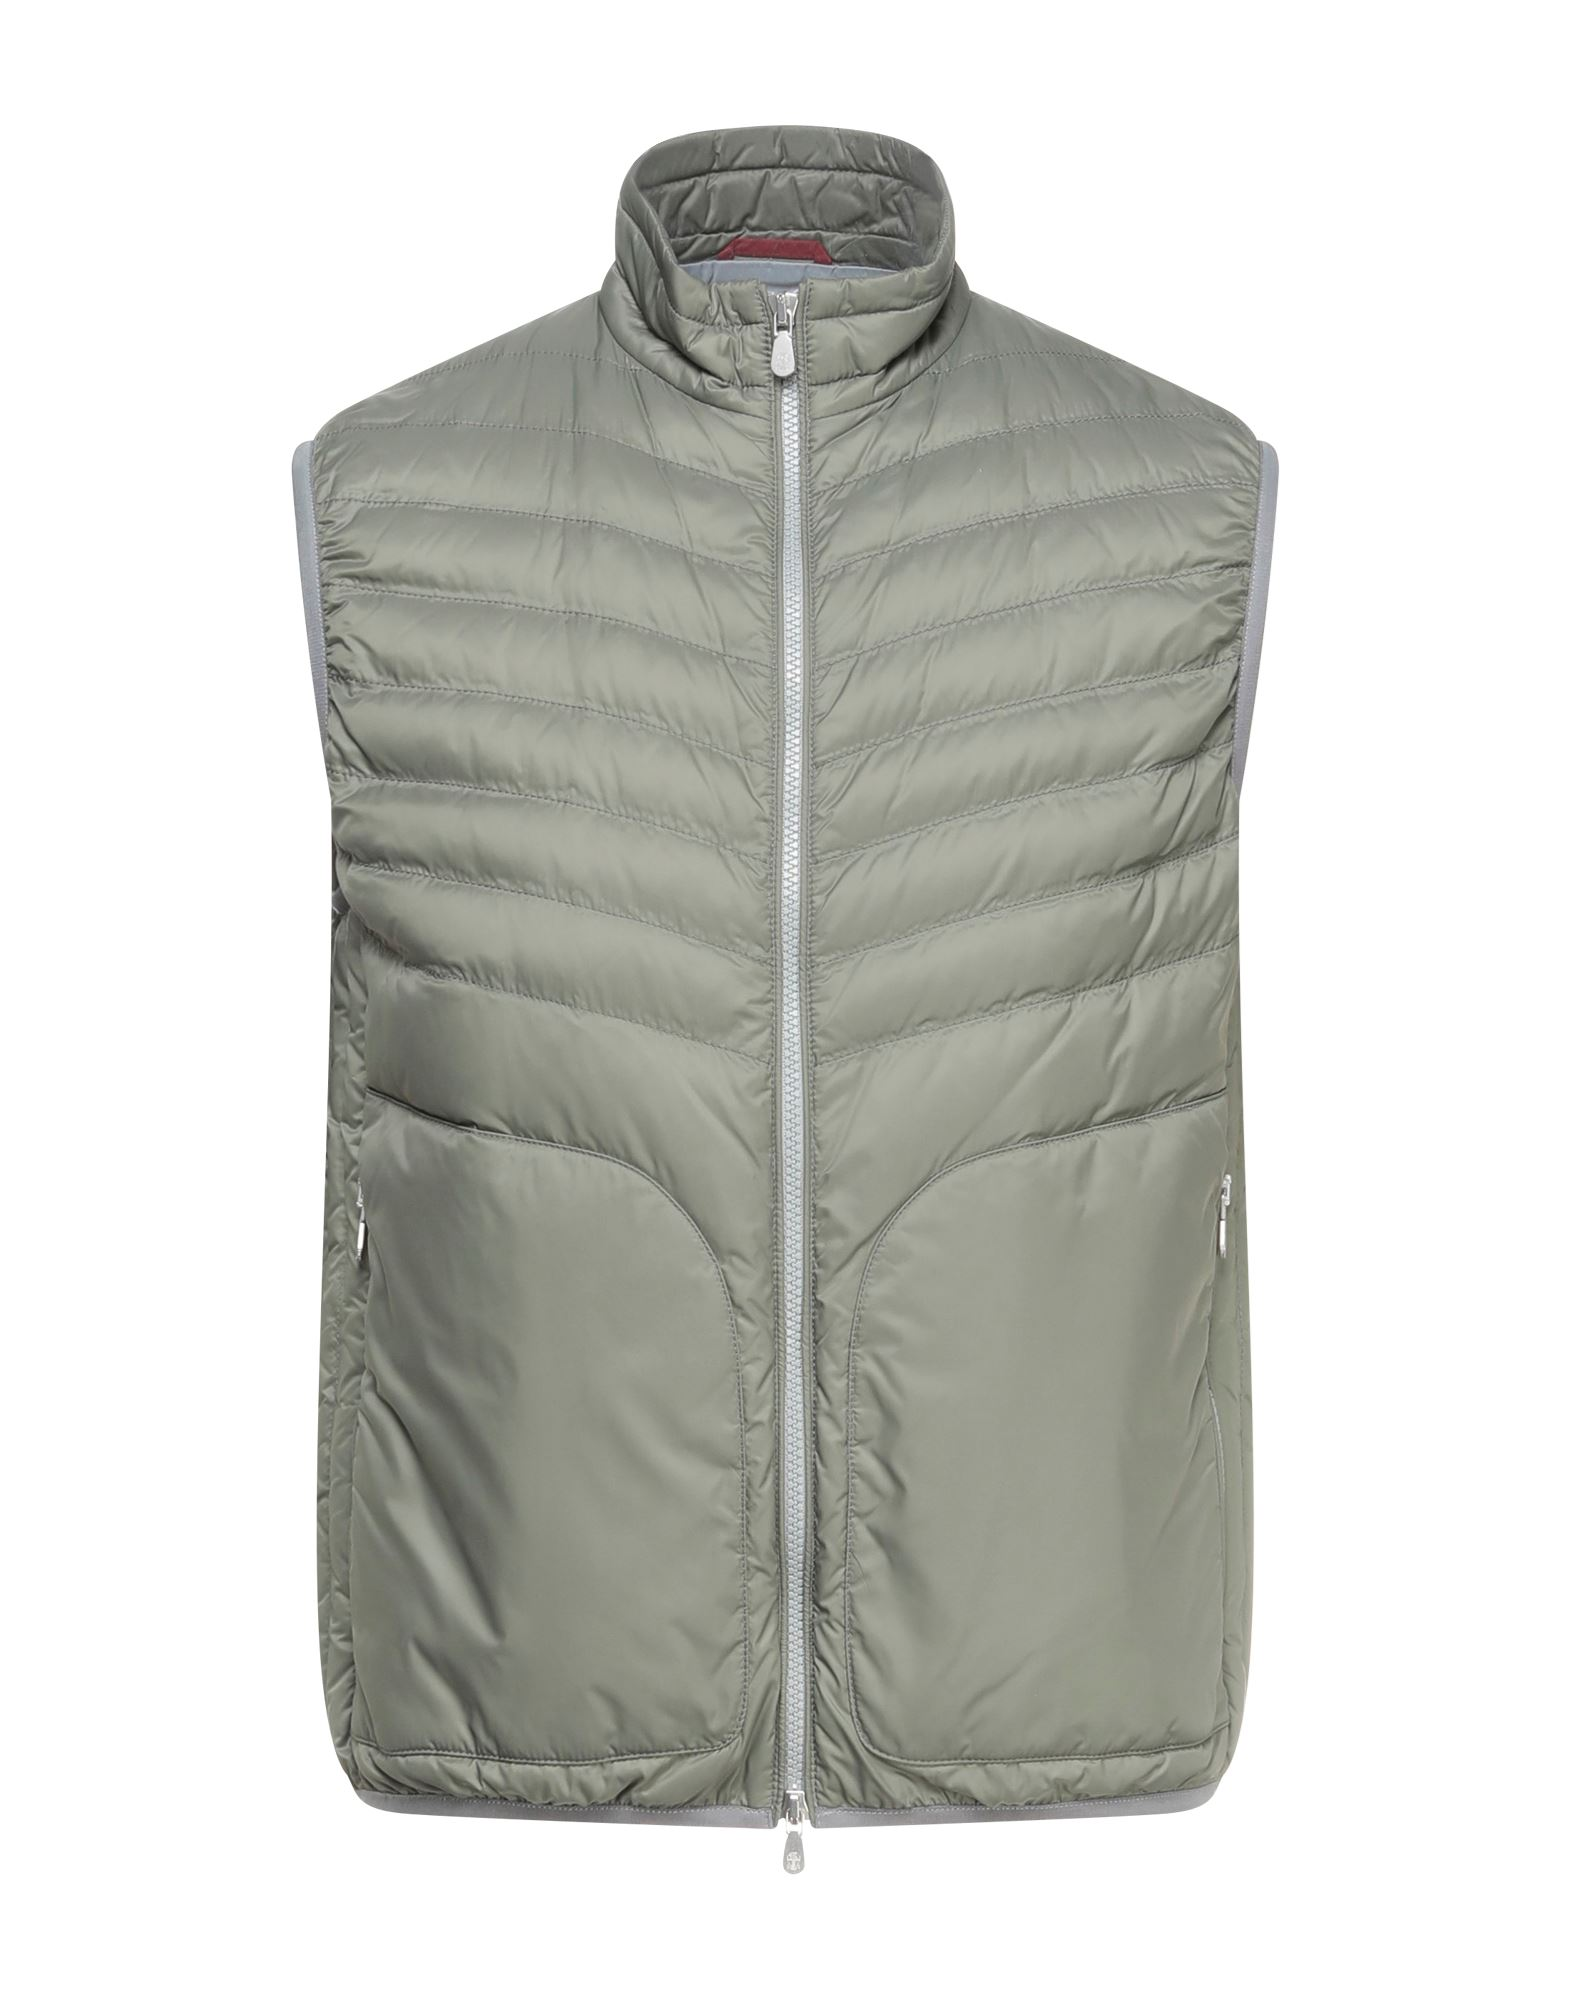 BRUNELLO CUCINELLI Synthetic Down Jackets. techno fabric, no appliqués, solid color, single-breasted, zipper closure, turtleneck, multipockets, sleeveless, internal padding, large sized. 100% Nylon